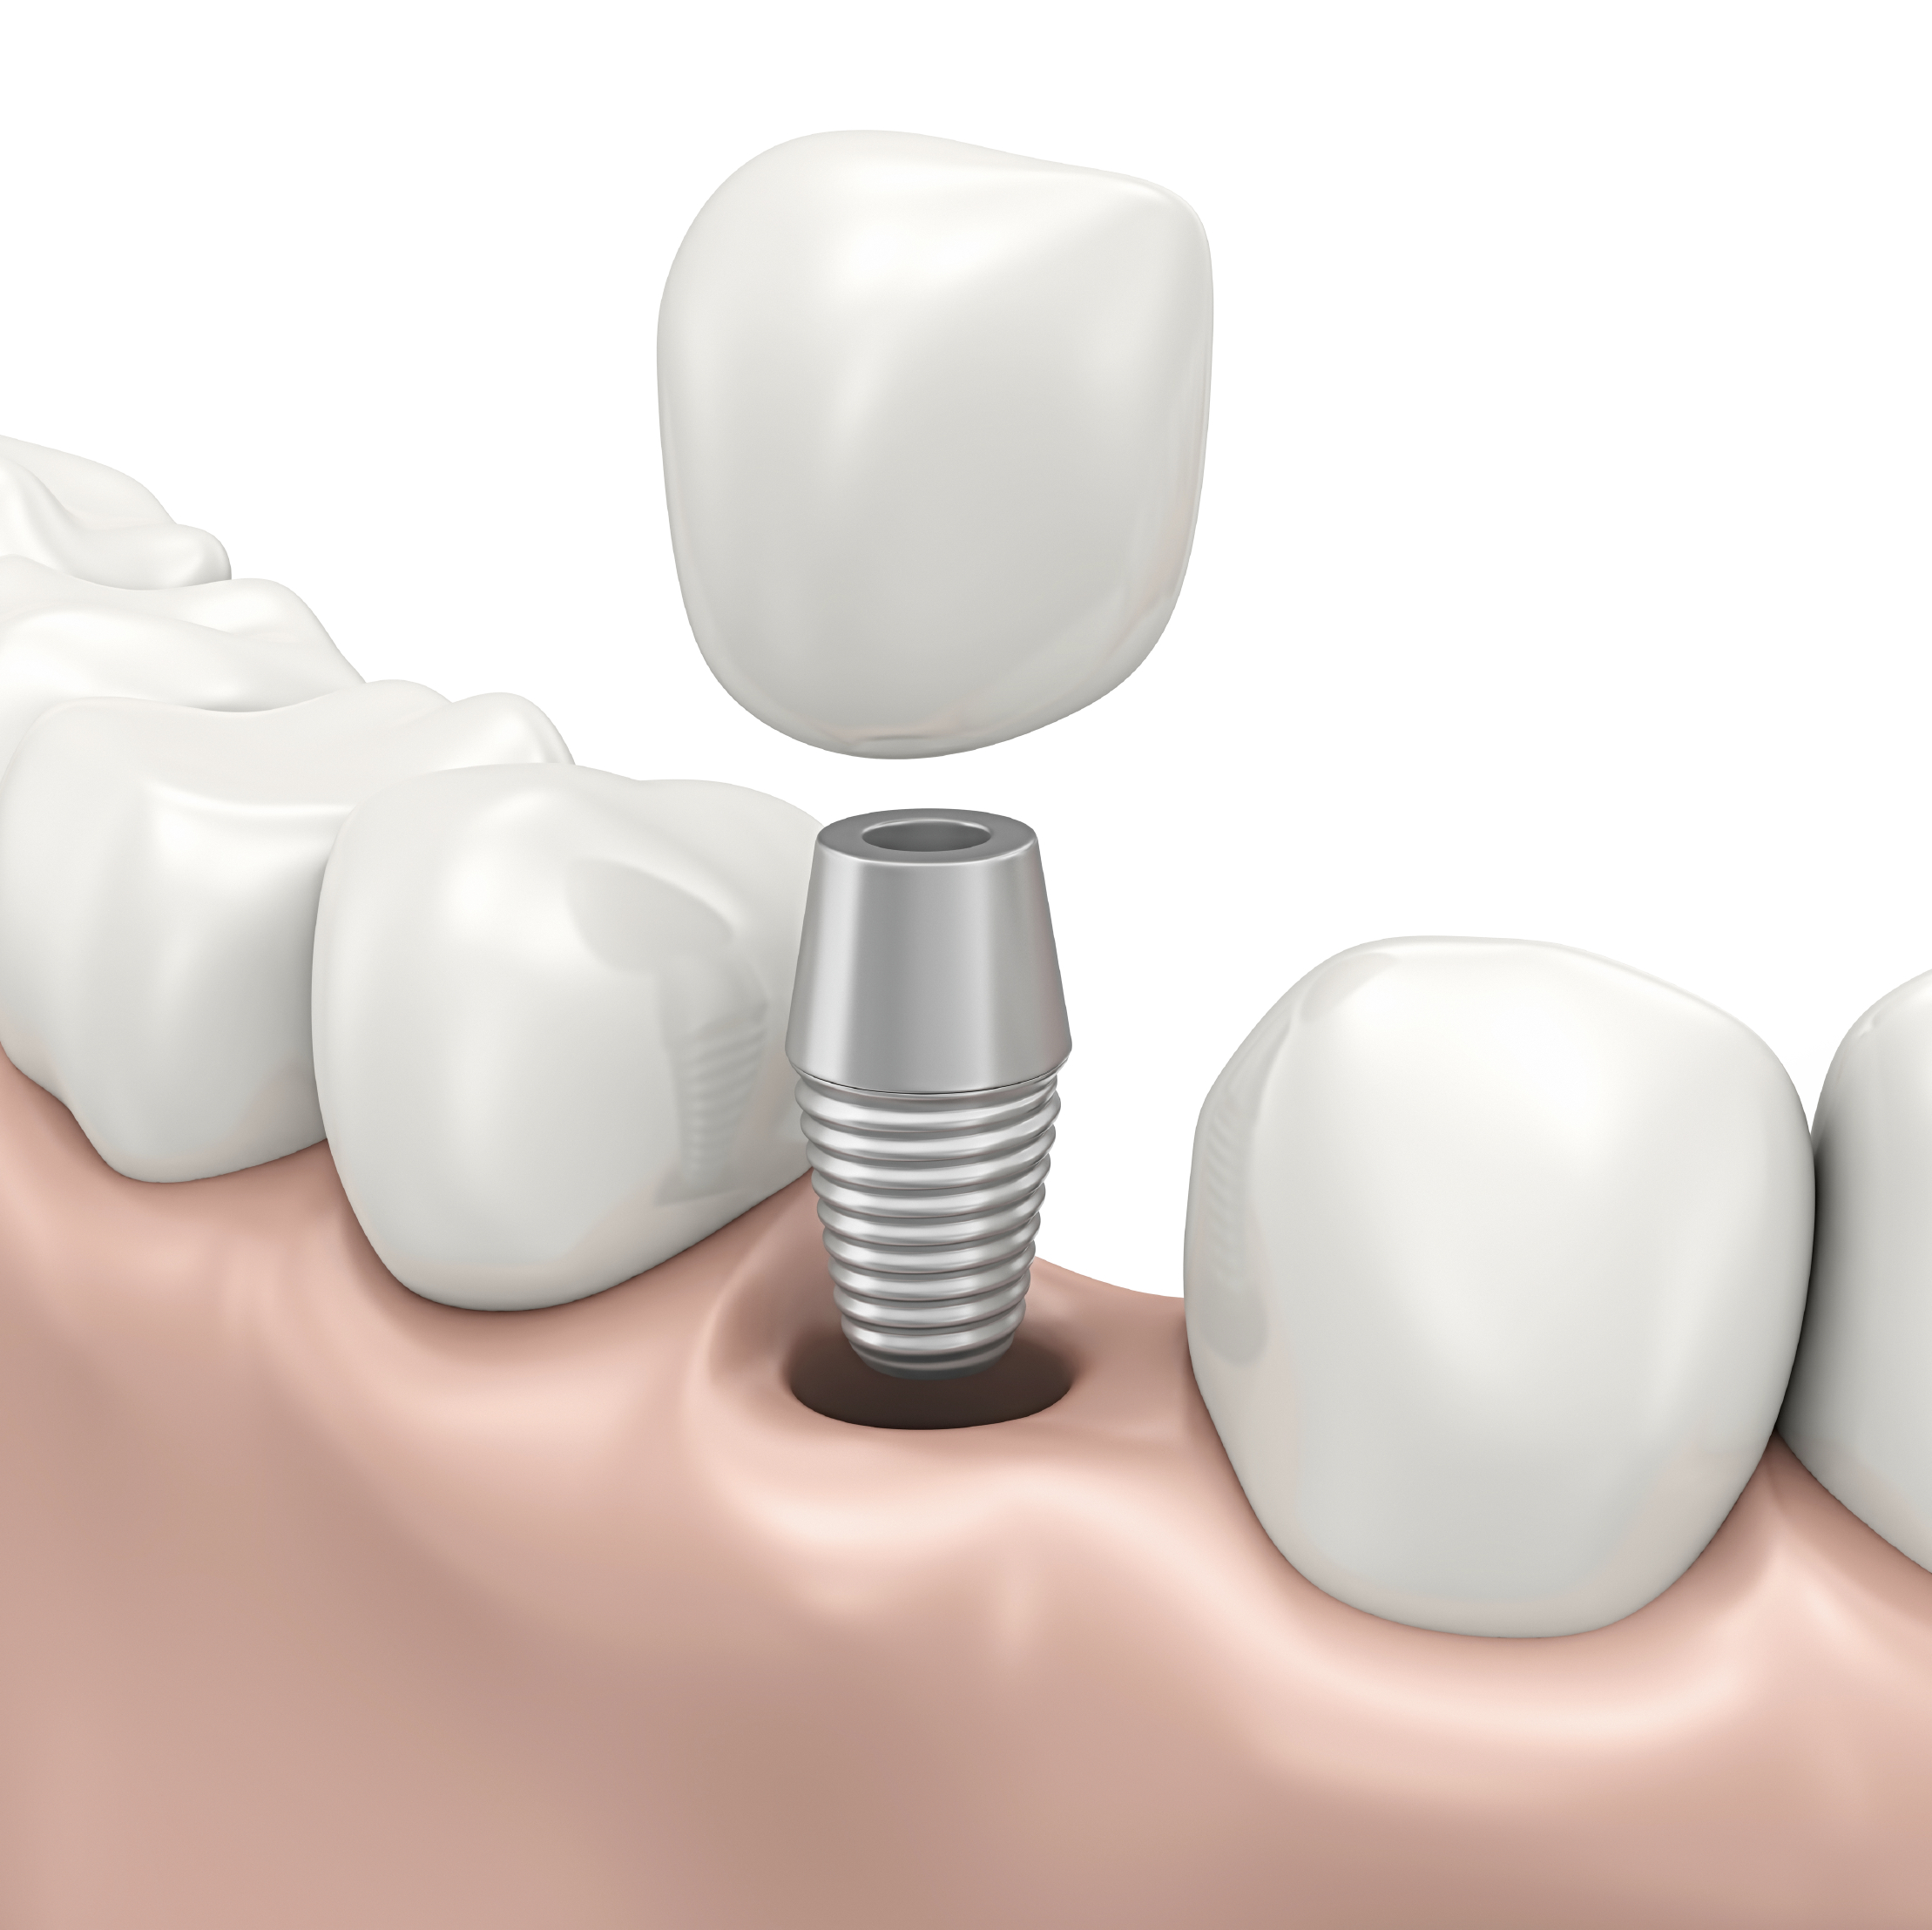 Dental Implants in Red Bank & Middletown - Dr. Zaidi